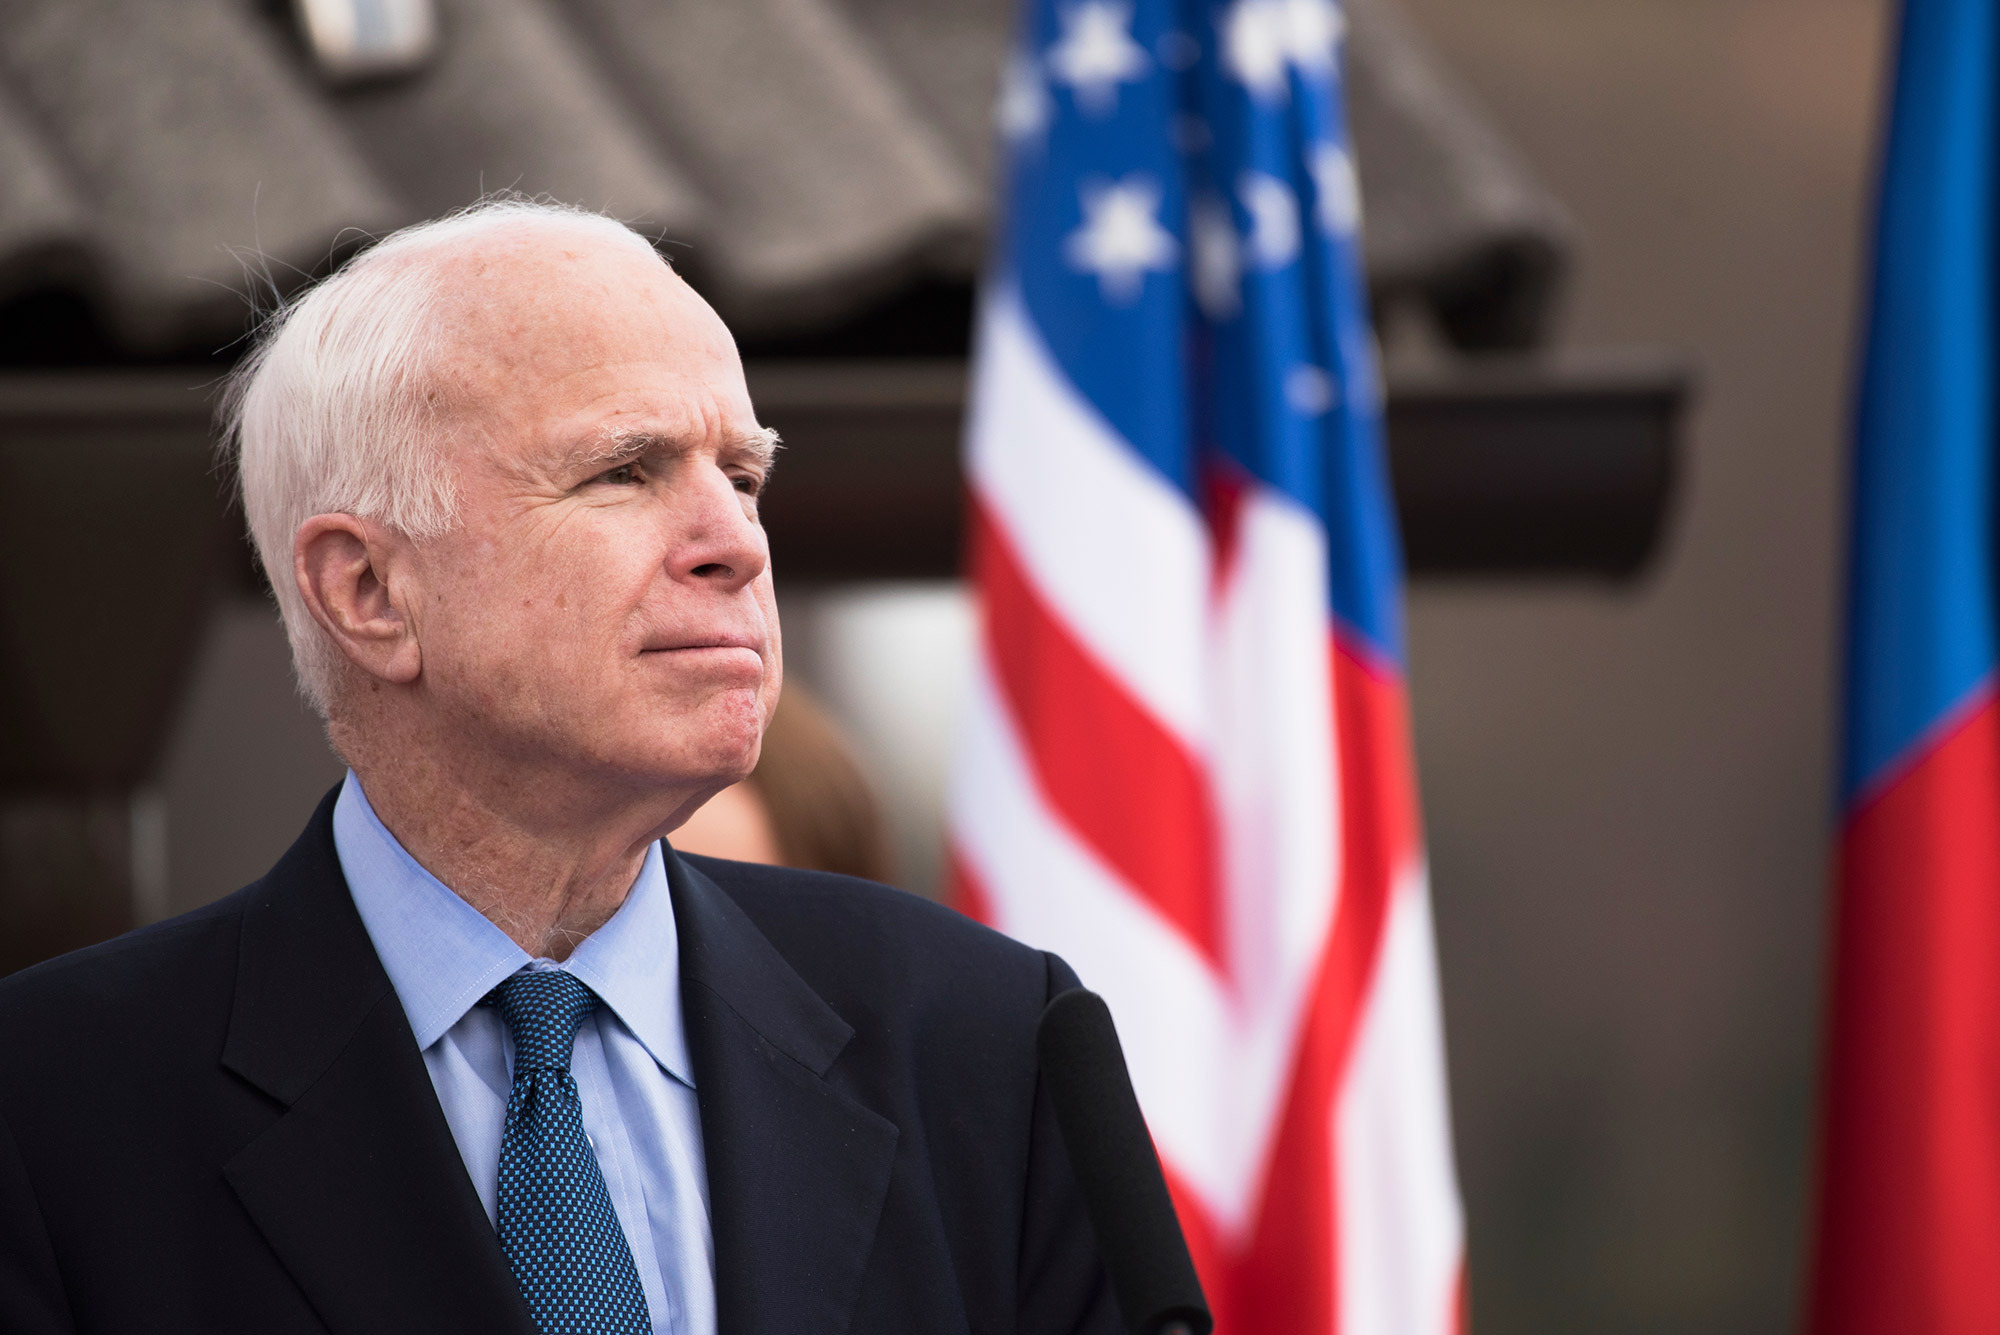 Senator John McCain Diagnosed With Brain Cancer